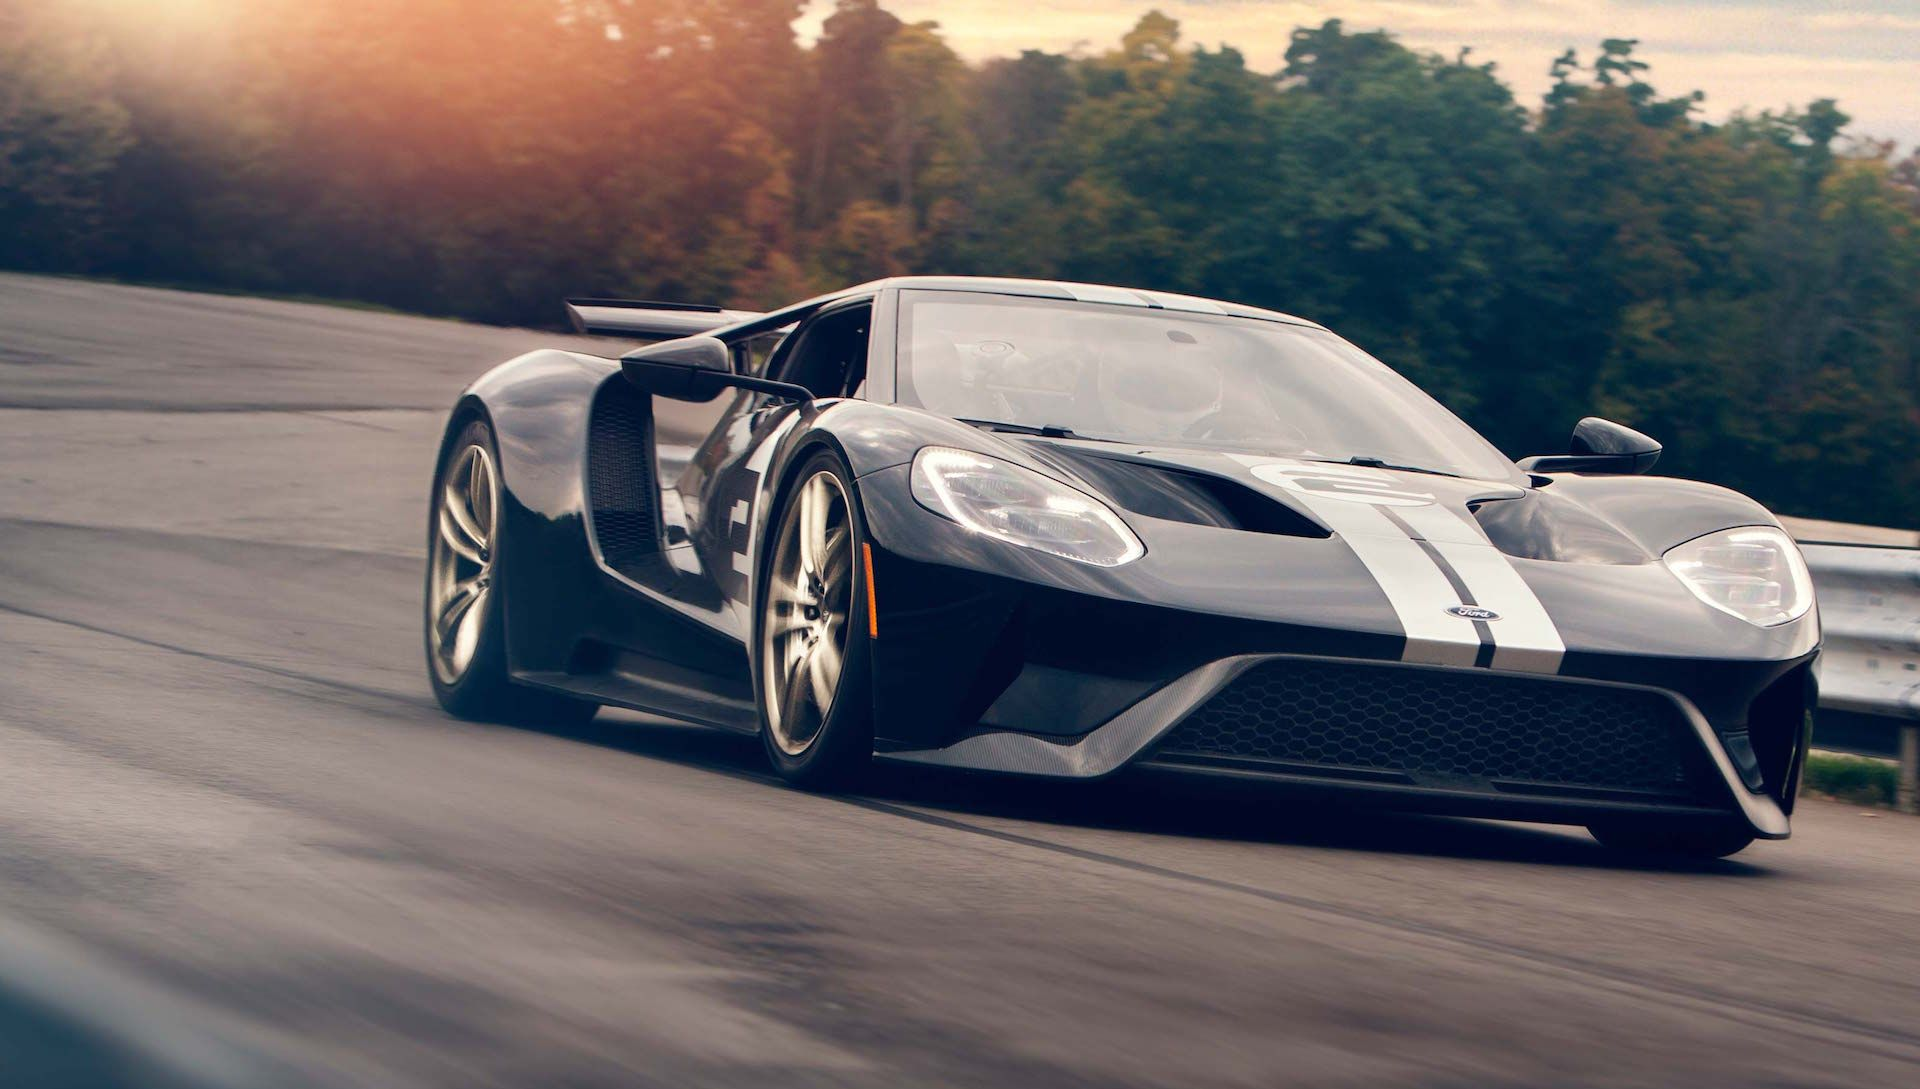 2017 Ford Gt Tops Out At 216 Mph Fastest Production Ford Ever Autos Deportivos Carros Y Motos Autos